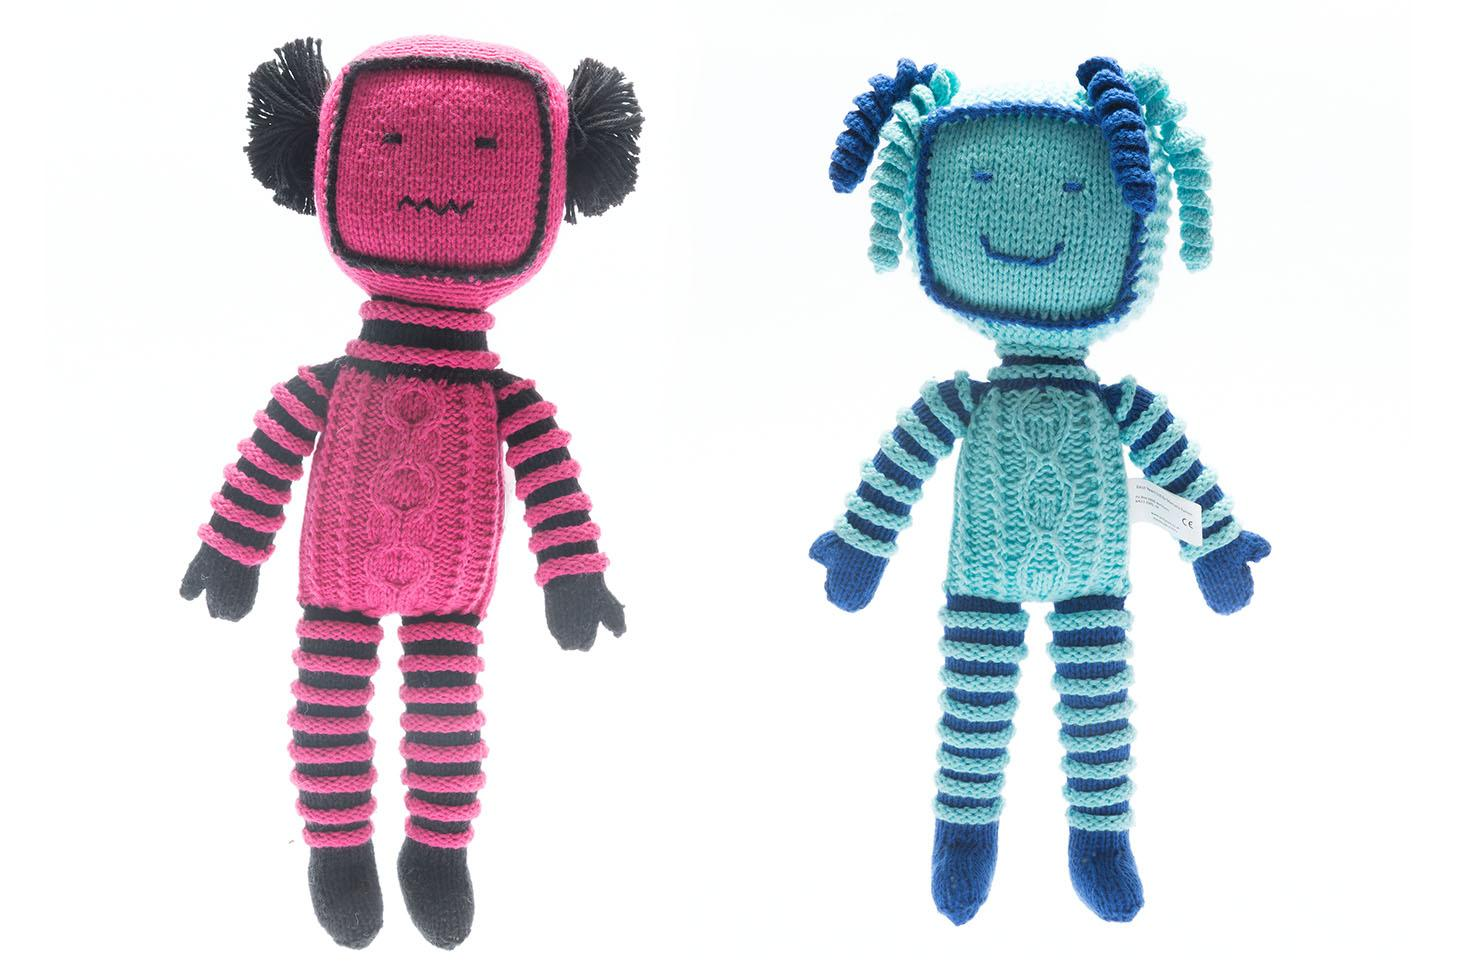 Knitted robots